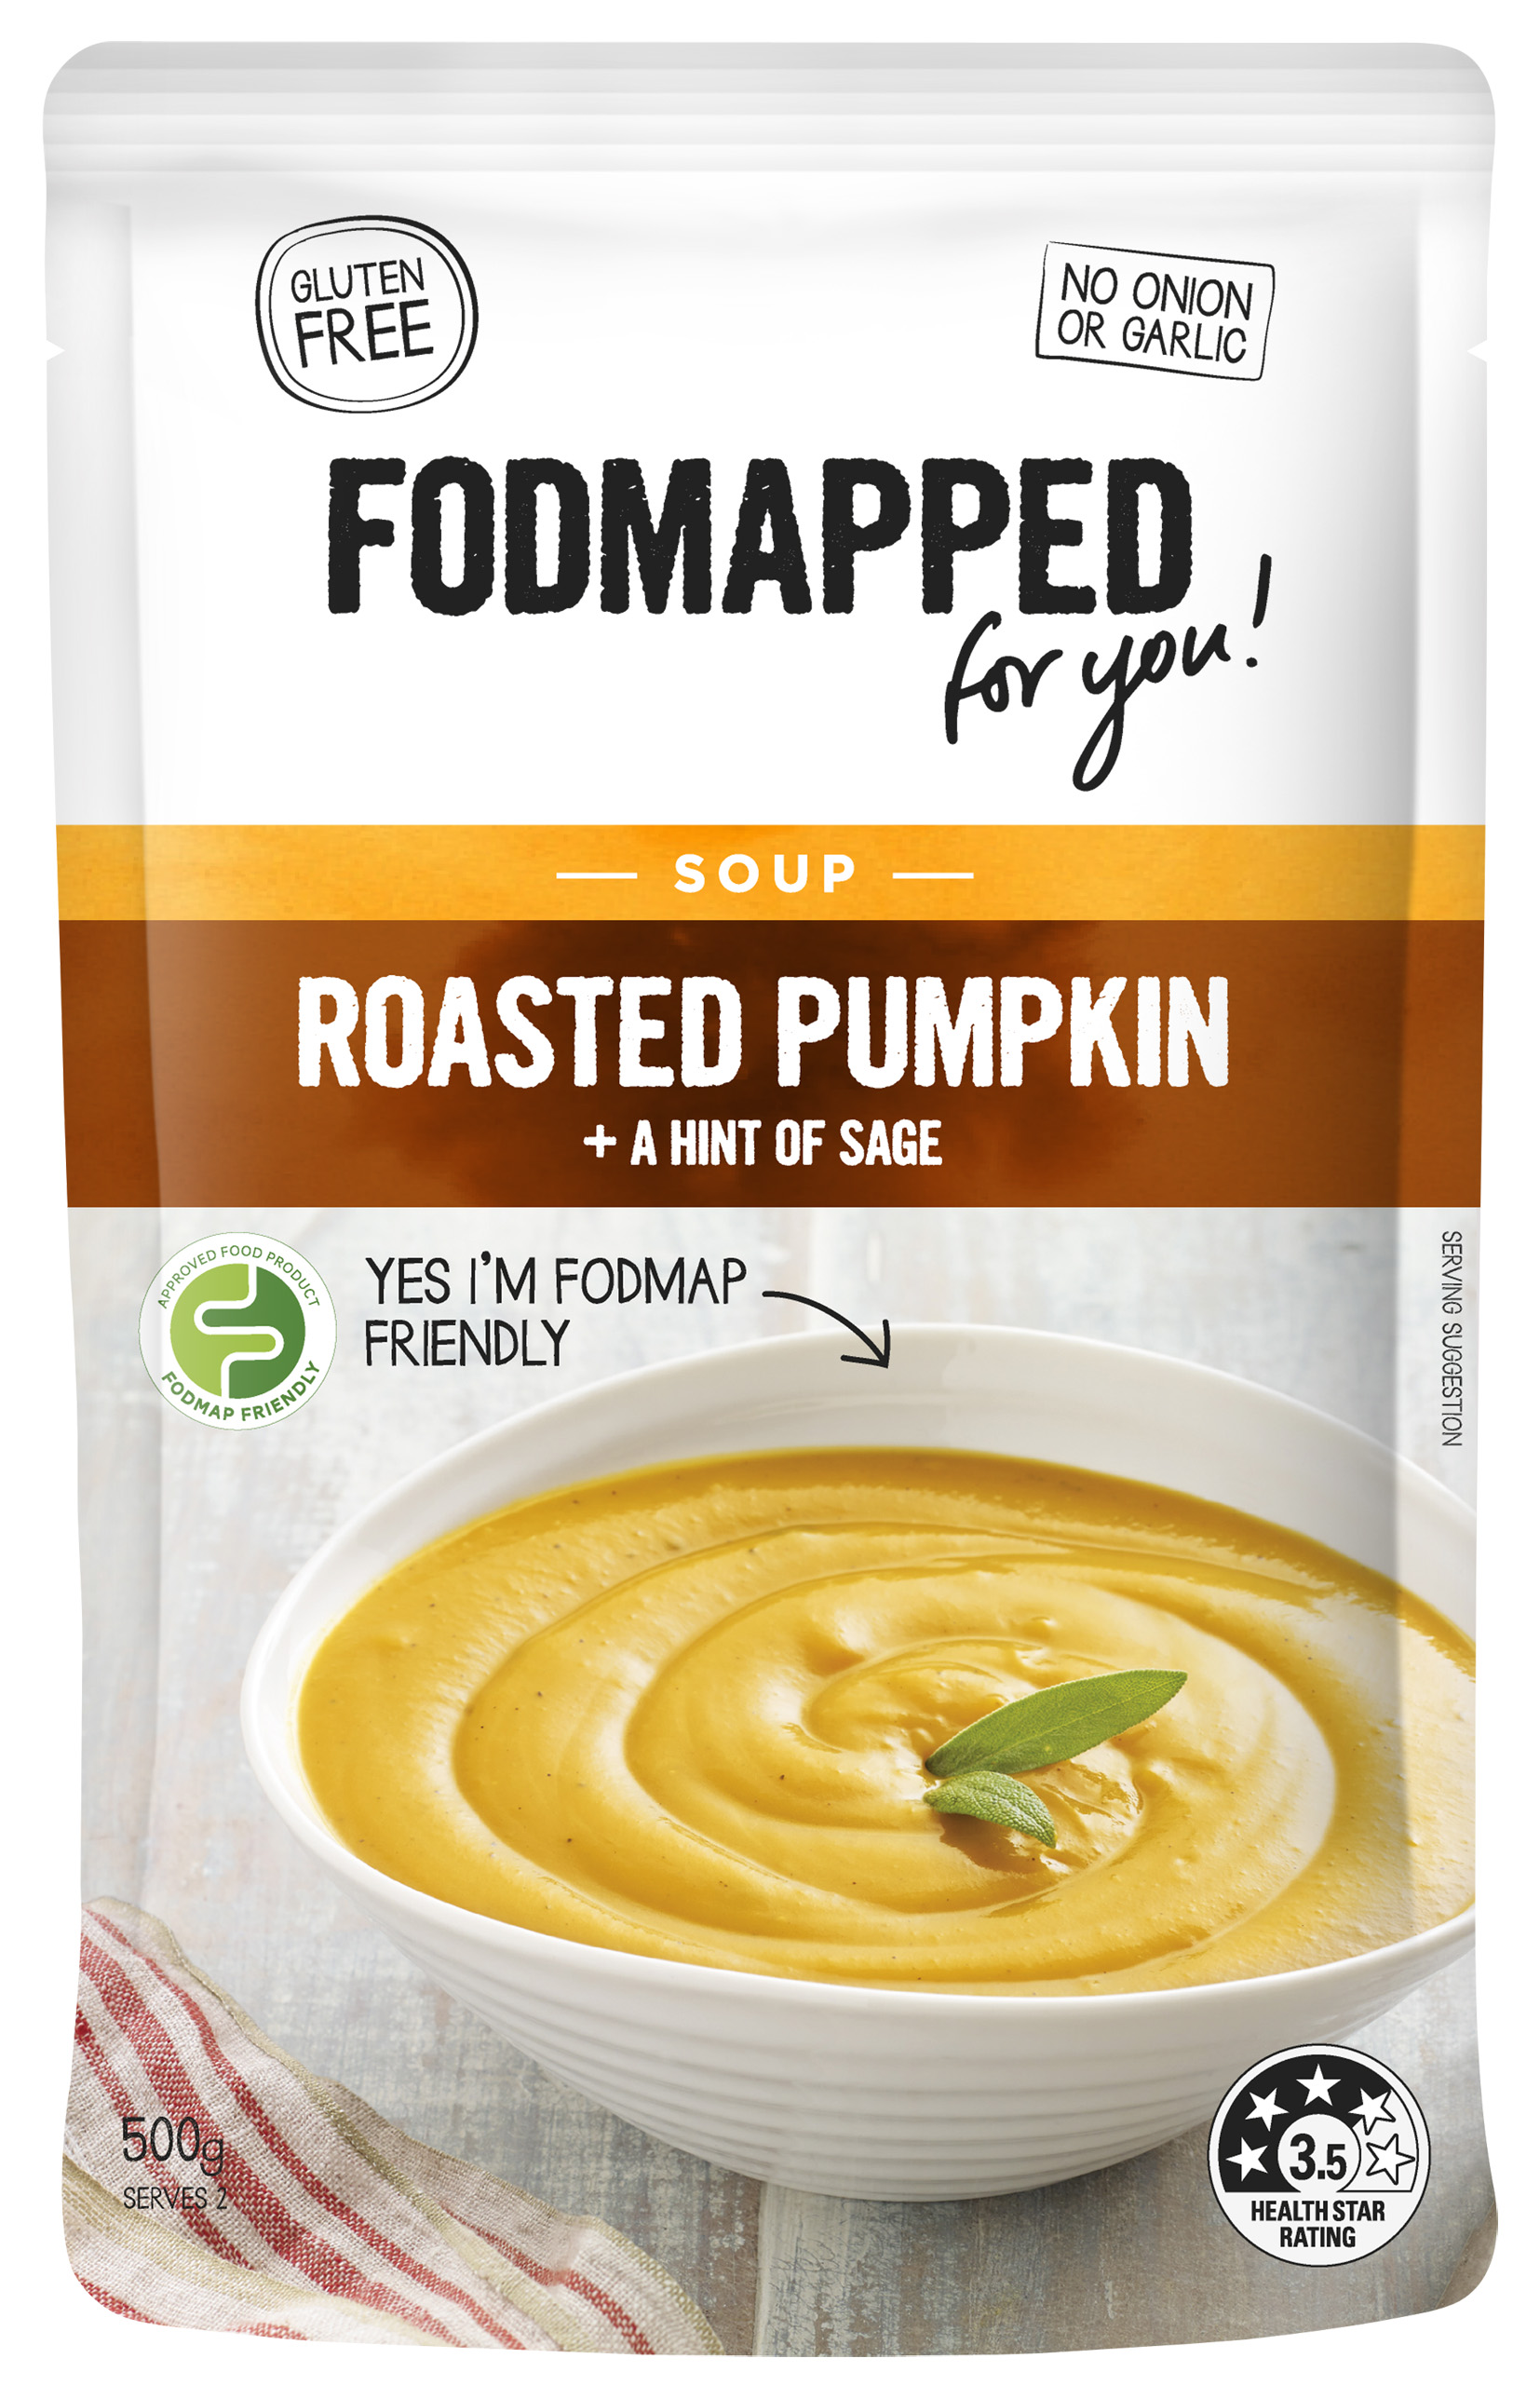 3120-5-fodmapped-roasted-pumpkin-soup-with-a-hint-of-sage